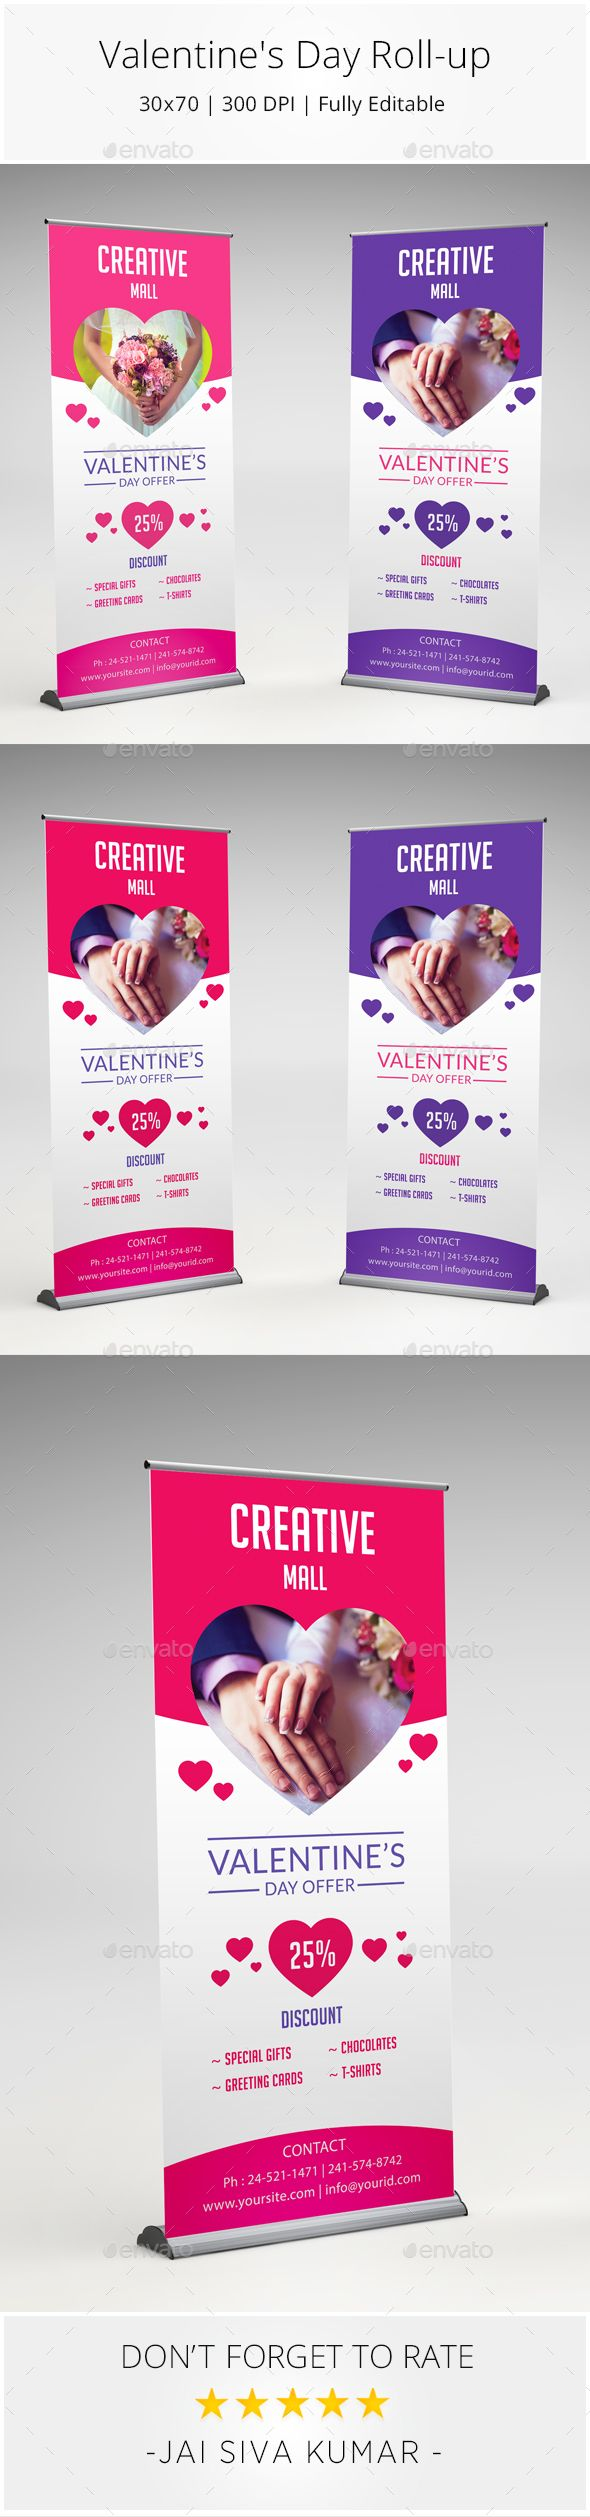 Valentines Day Roll-Up Banner Template PSD #design Download: http://graphicriver.net/item/valentines-day-banner/14397453?ref=ksioks